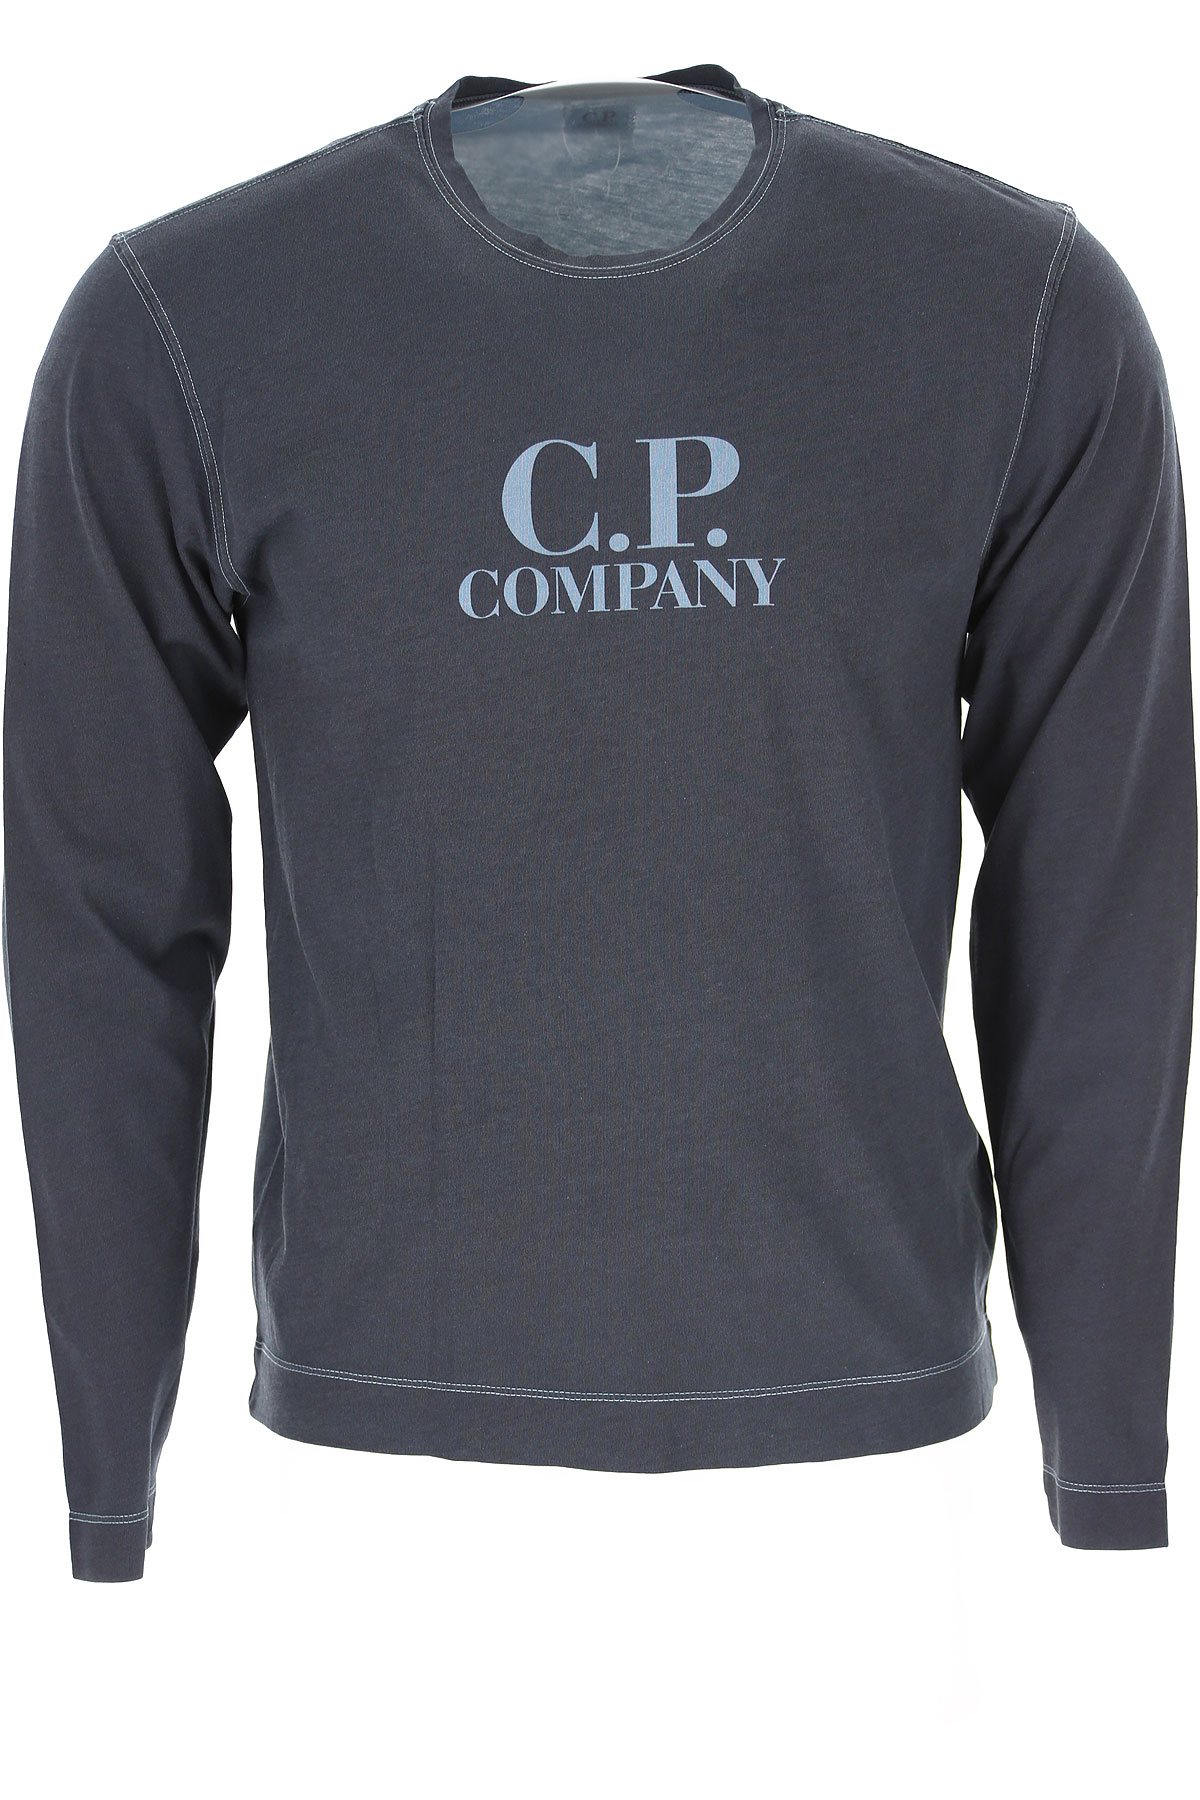 C.P. Company T-Shirt for Men On Sale, Dark Grey, Cotton, 2019, L M